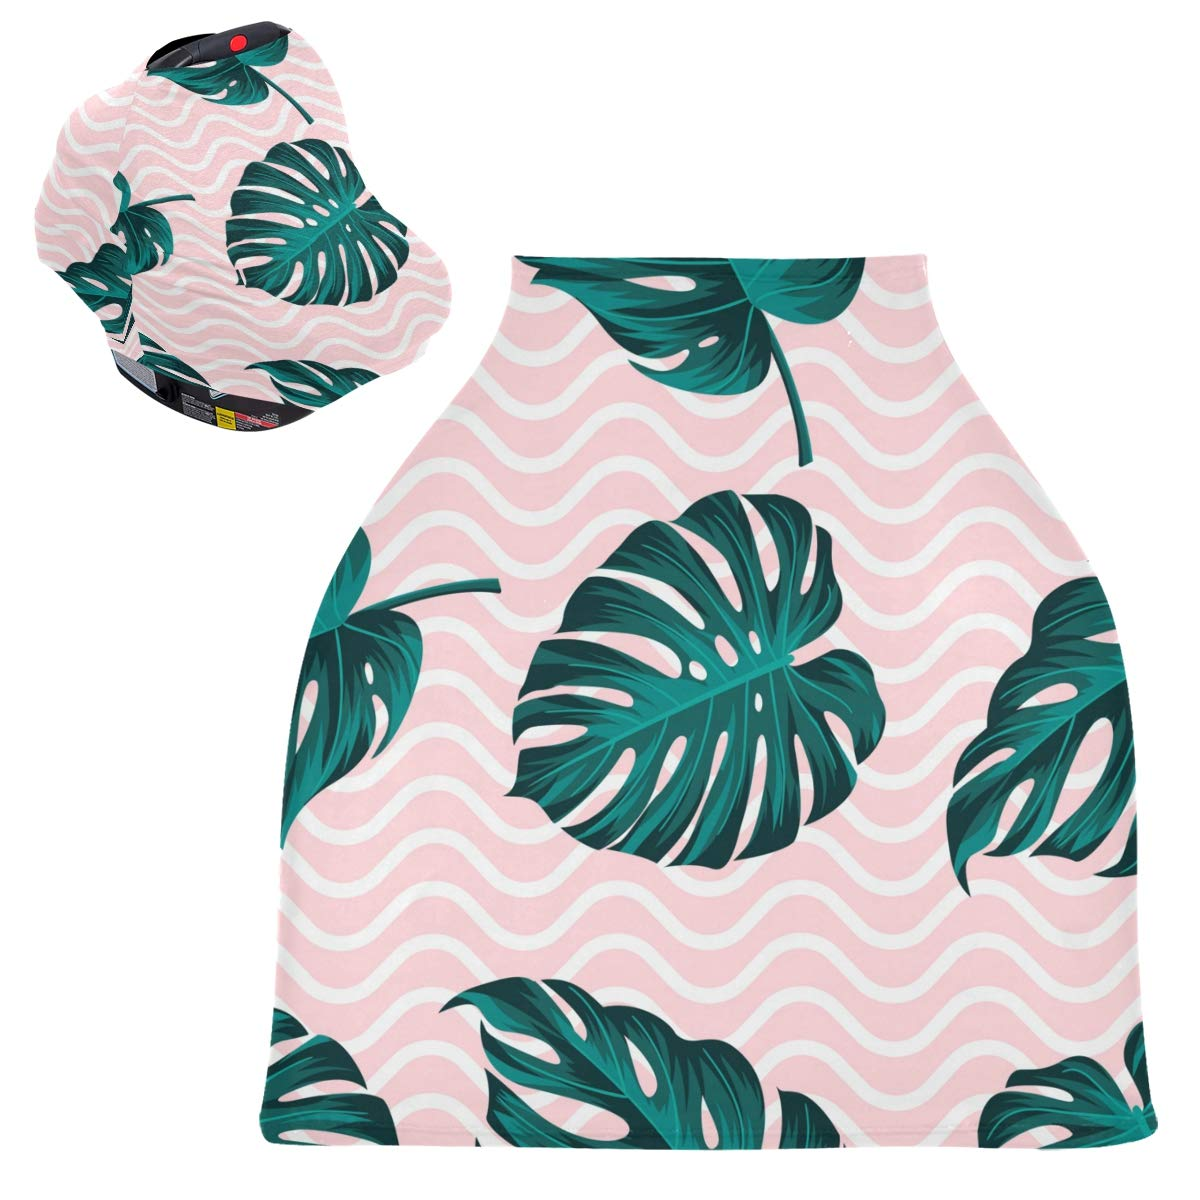 Stretchy Baby Car Seat Canopy - Tropical Summer Palm Leaves Infant Stroller Cover Multi Use Baby Carseat Cover Nursing Cover for Boy